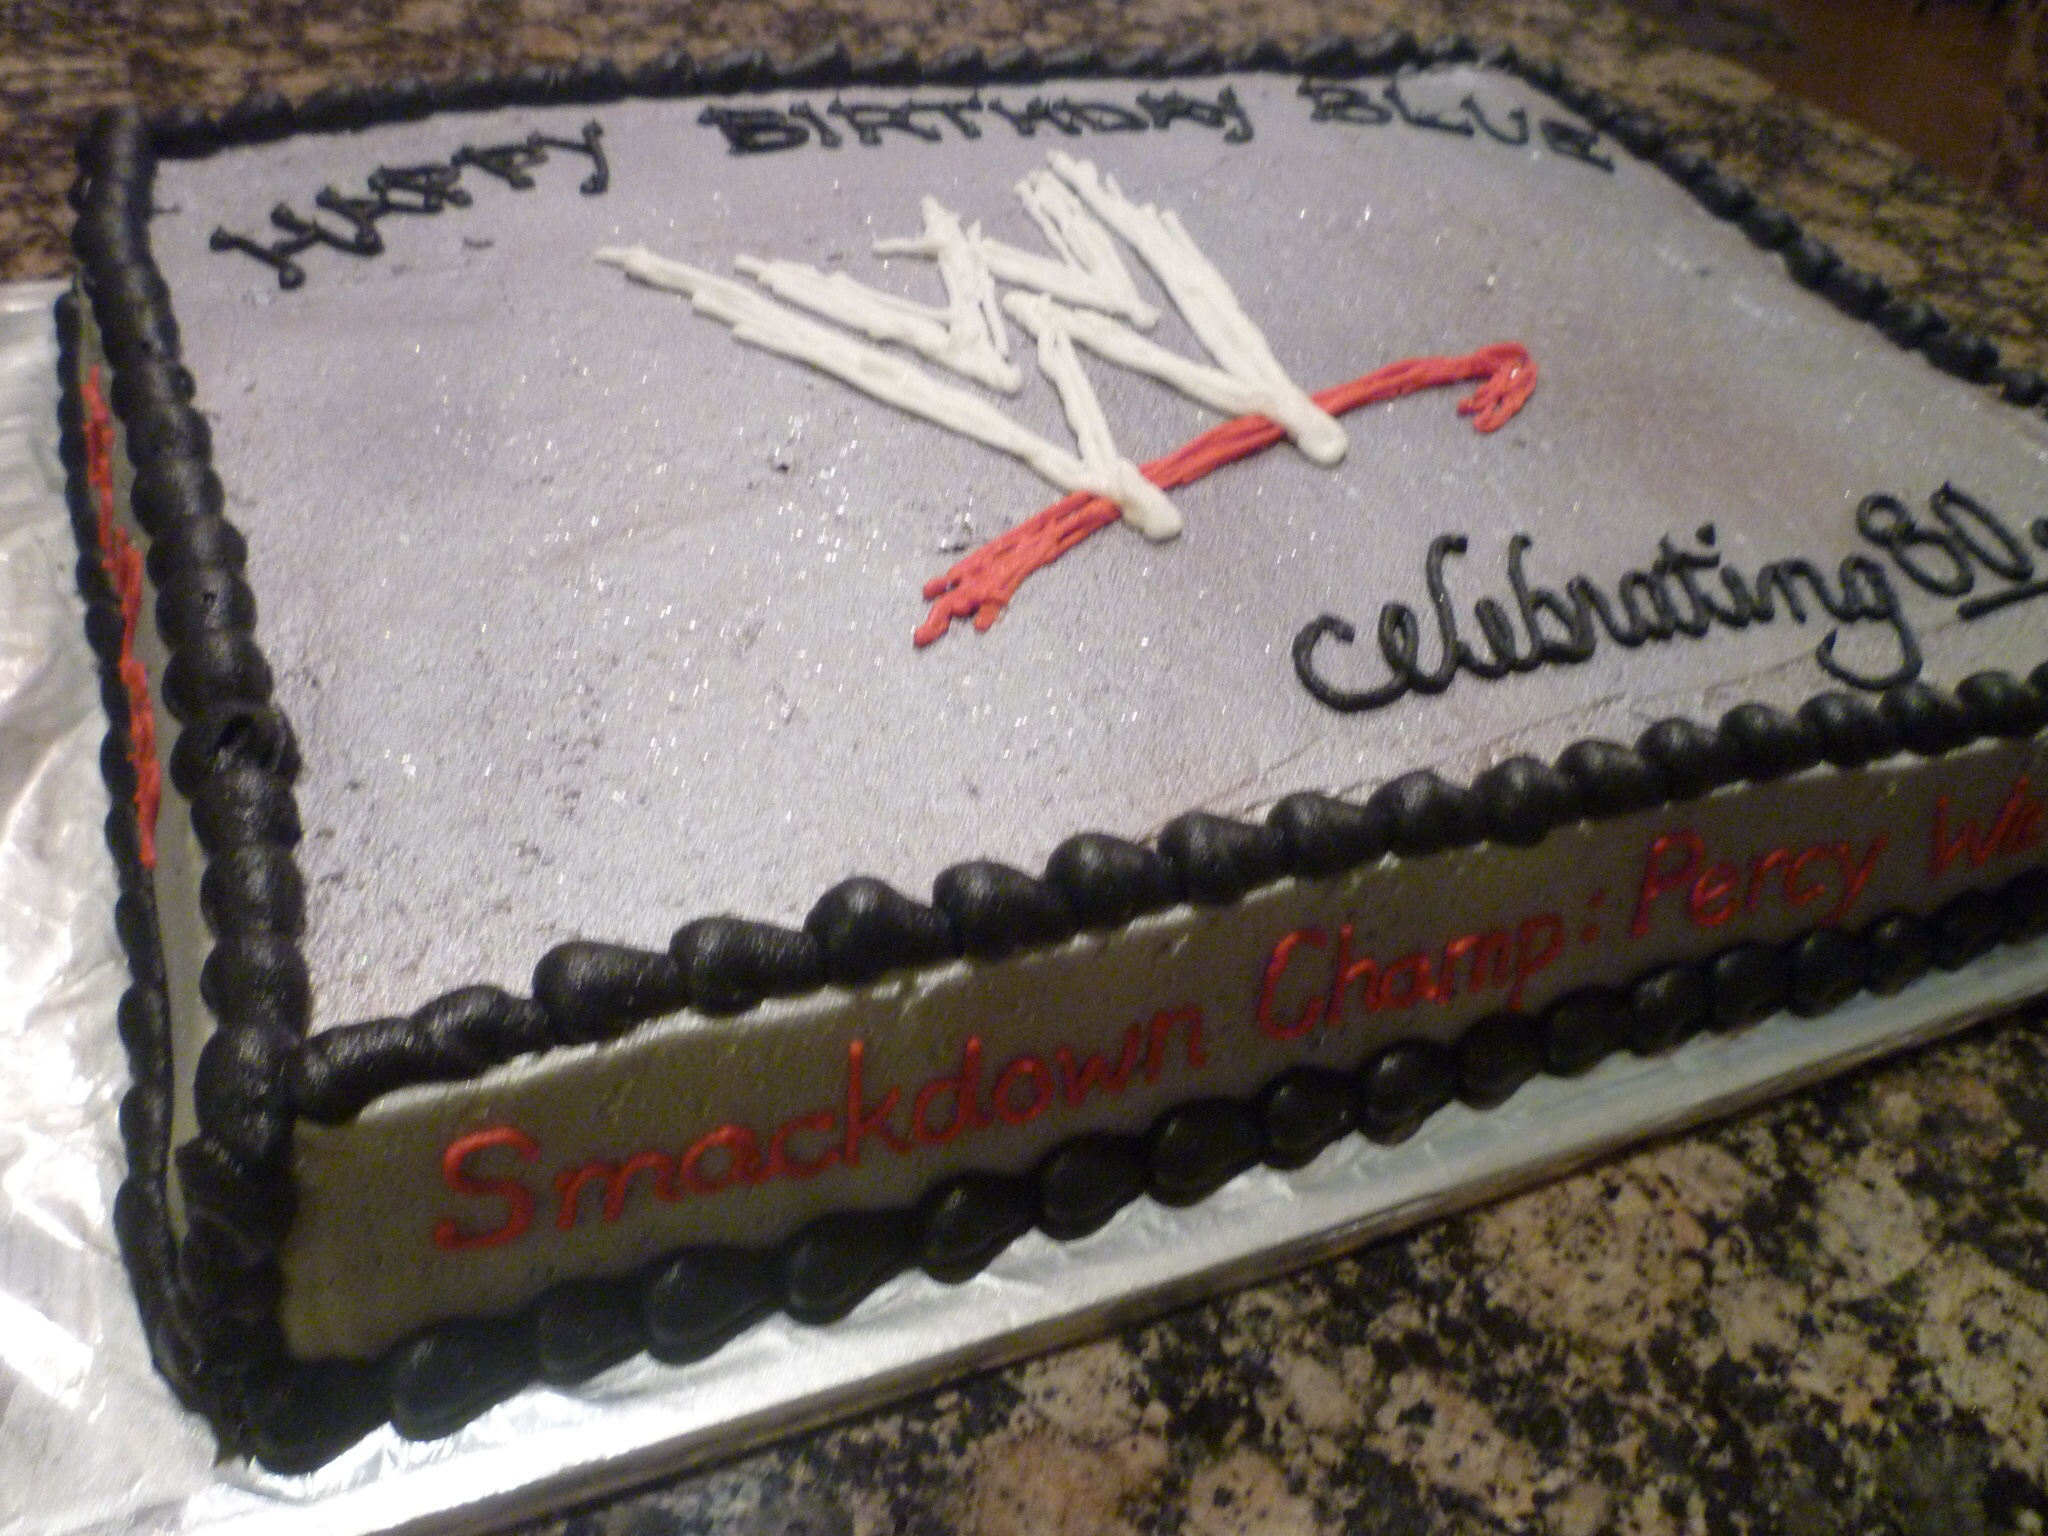 WWE chocolate Cake